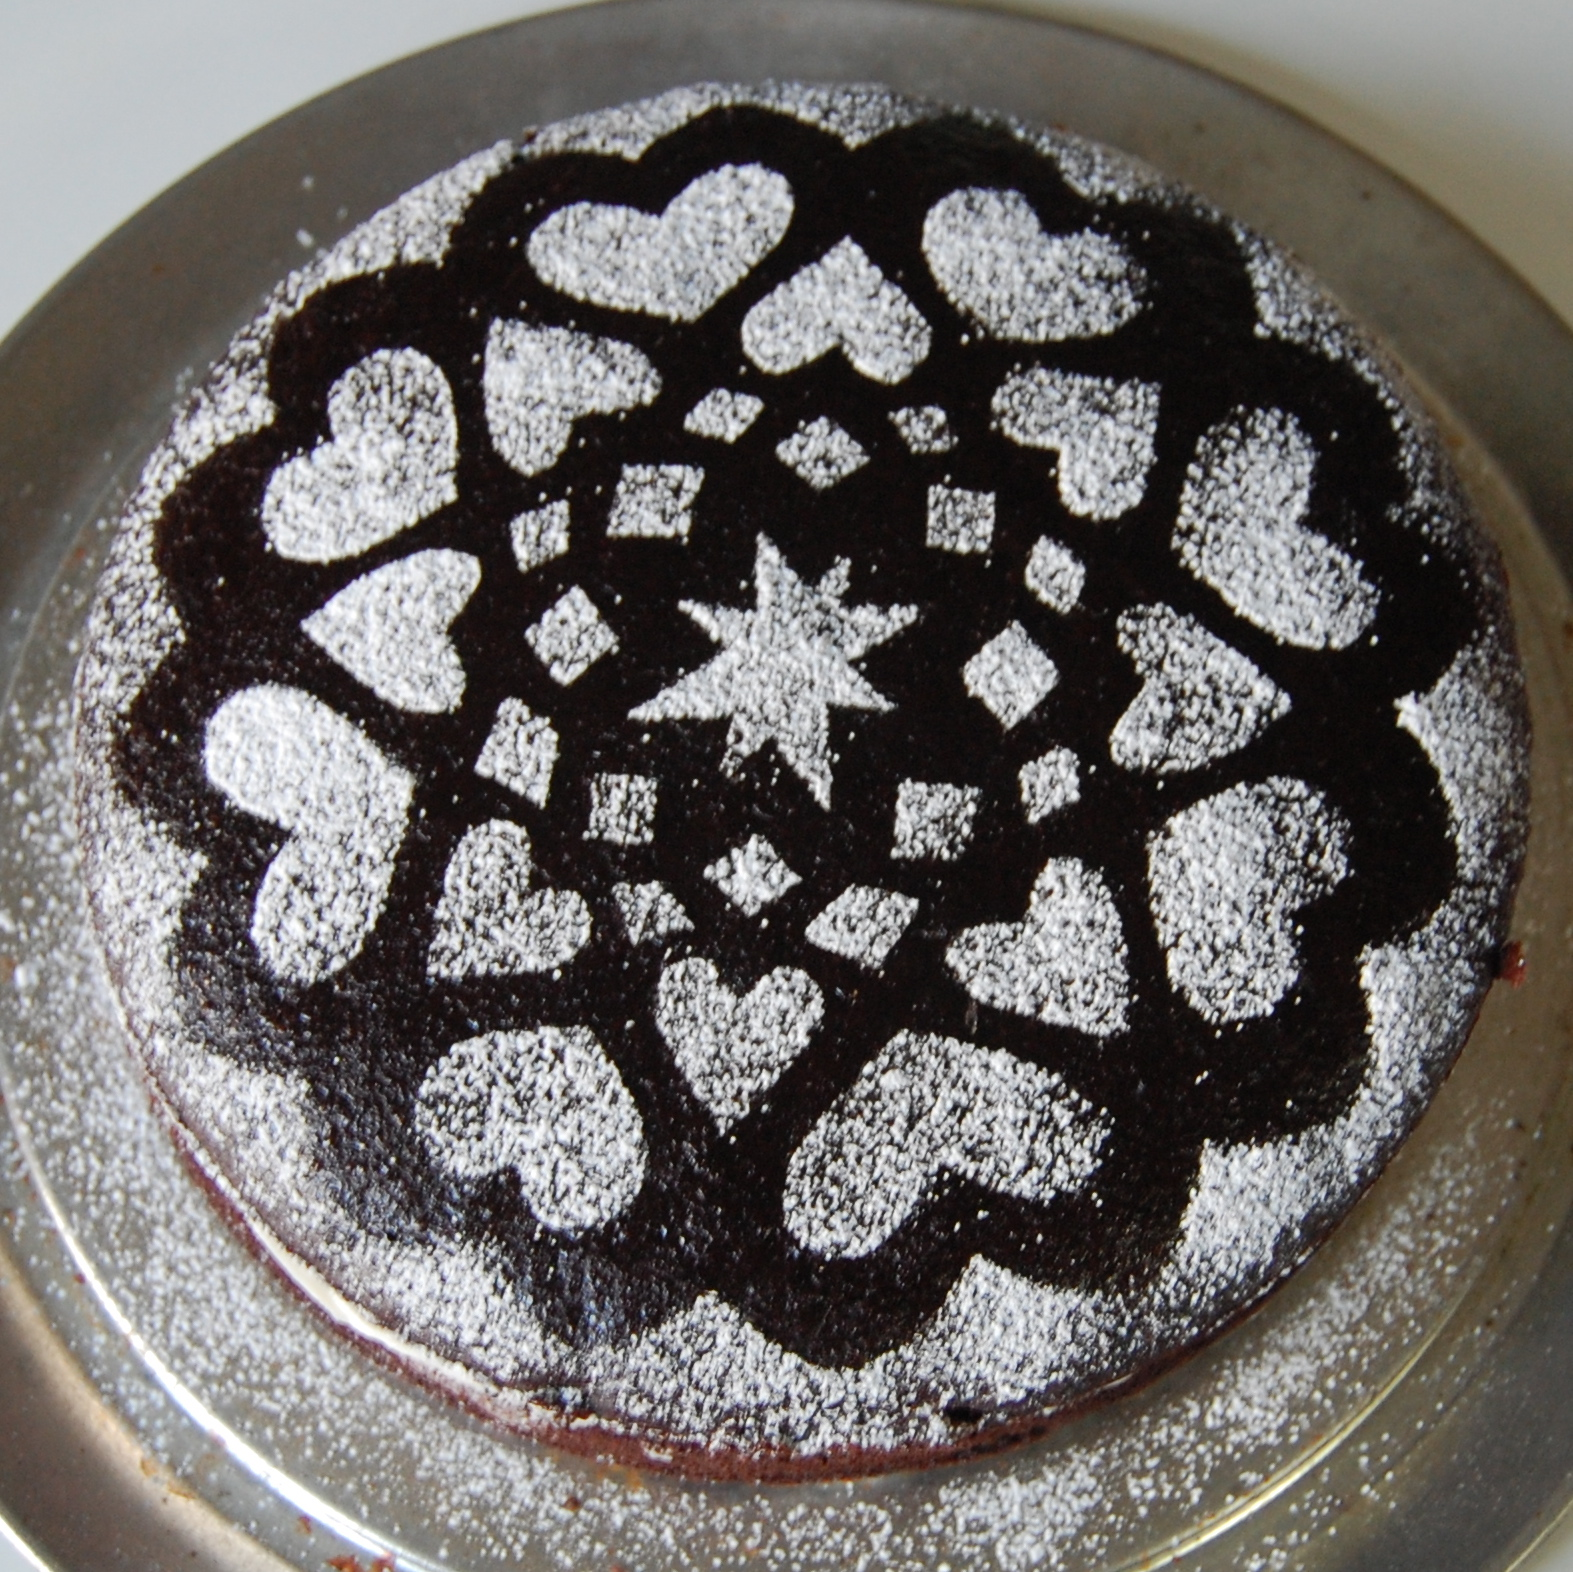 Healthy AND delicious chocolate cake